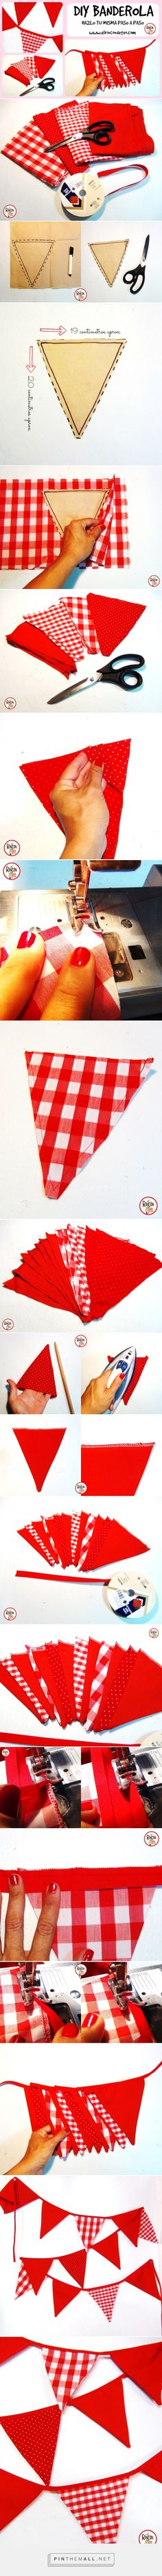 How to make a Banderola / Do it yourself with this tutorial! How to make a . Diy Christmas Presents, Christmas Diy, Picnic Birthday, Weekend Crafts, Fabric Bunting, Bbq Party, Paper Gifts, Diy For Kids, Frozen Birthday